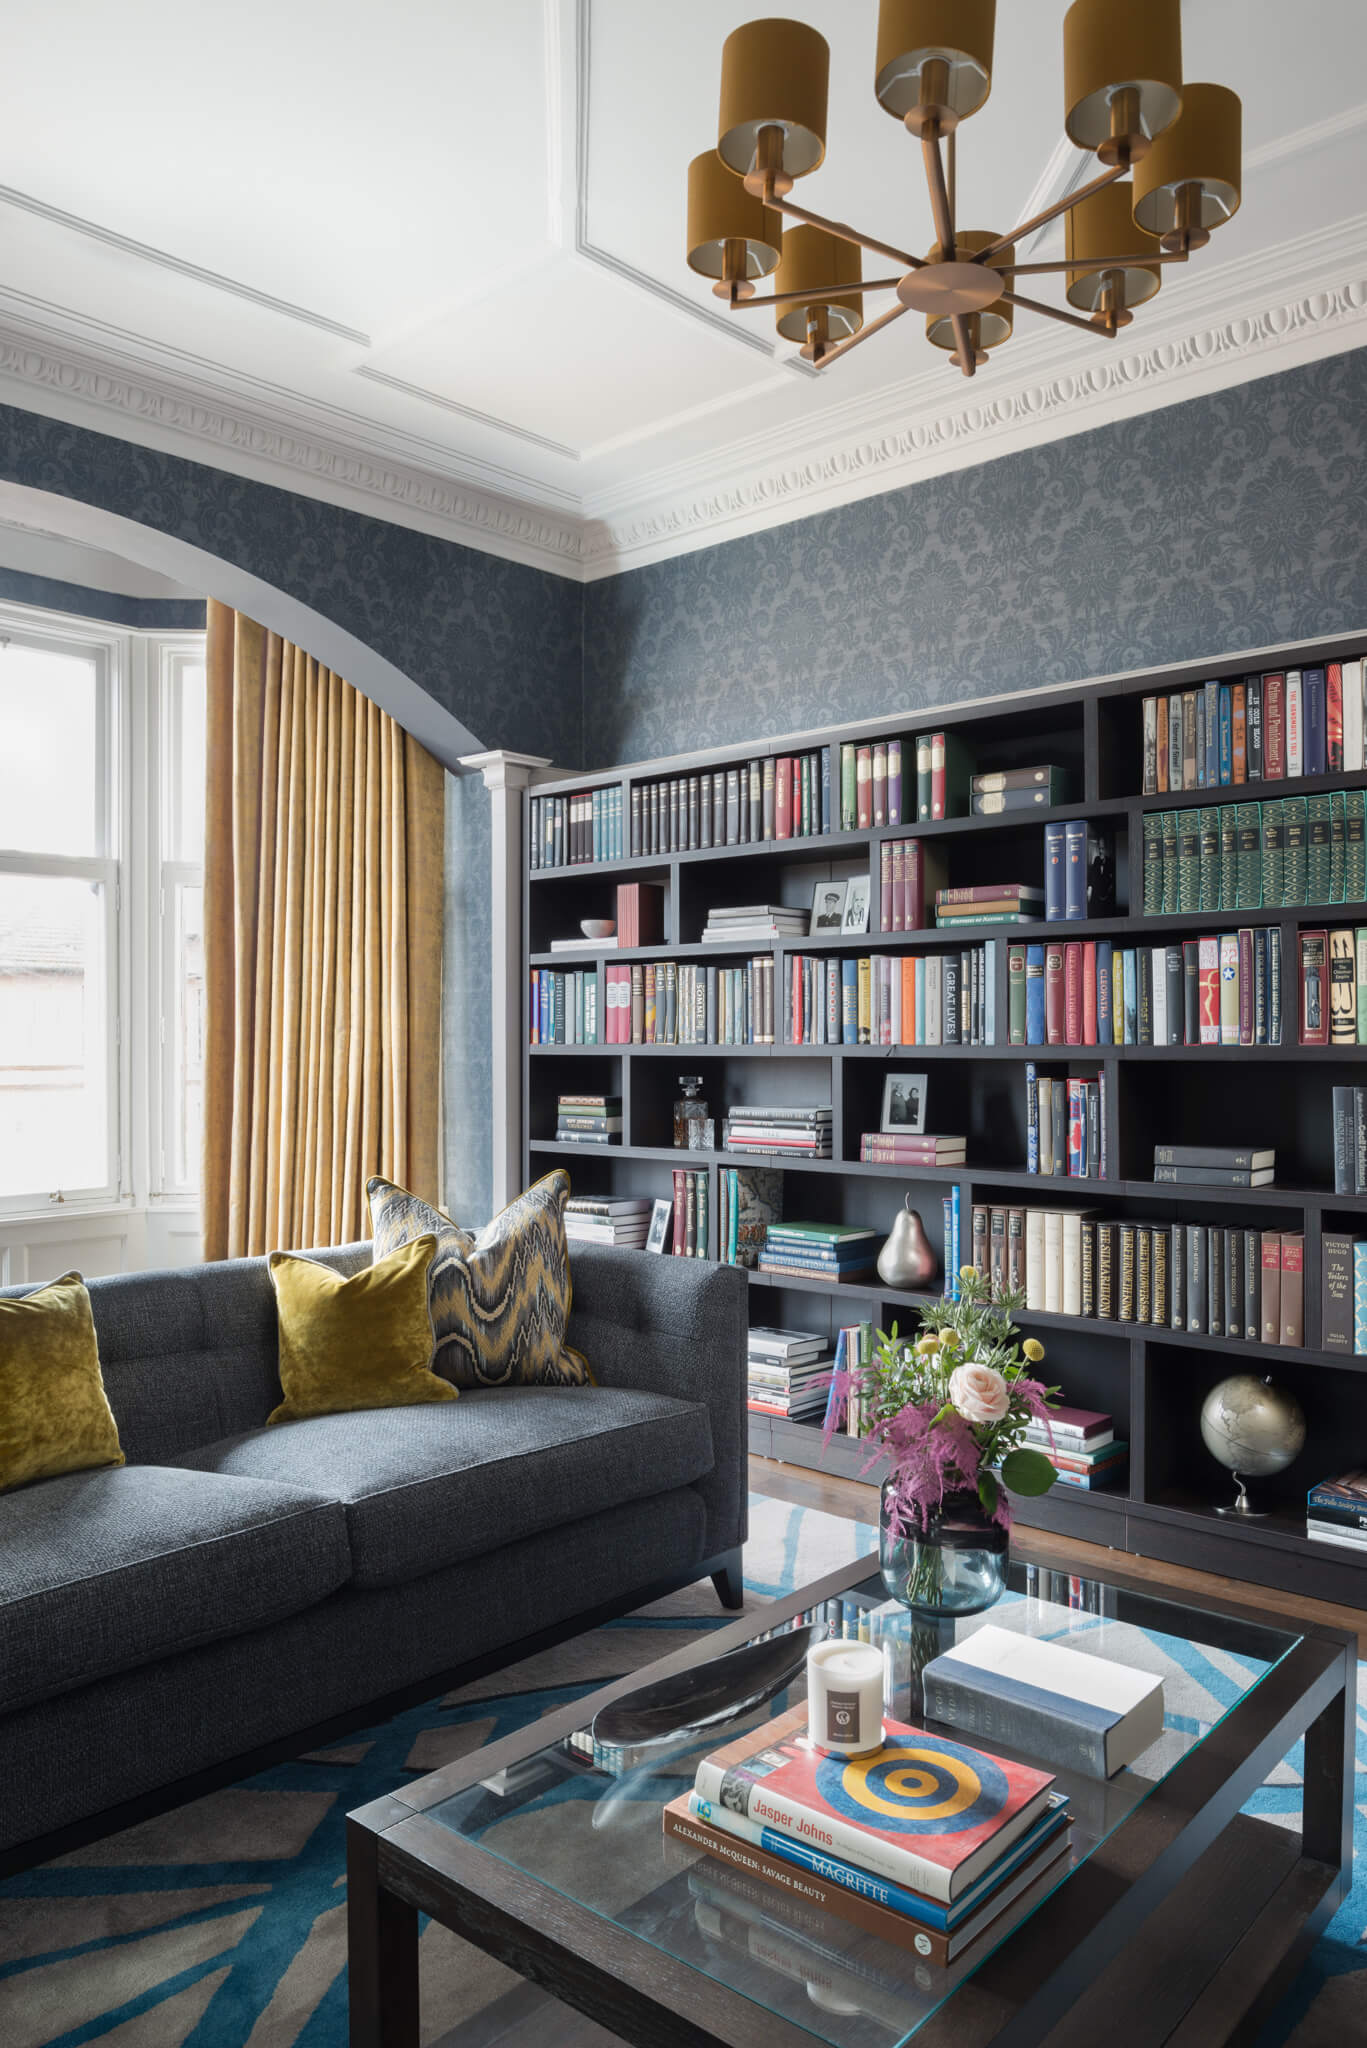 Print-Drawingroom-Across-Coffee-Table-To-Bookcase-Chelsea-Mclaine-Interiors-Introductory-Shoot-©ZACandZAC